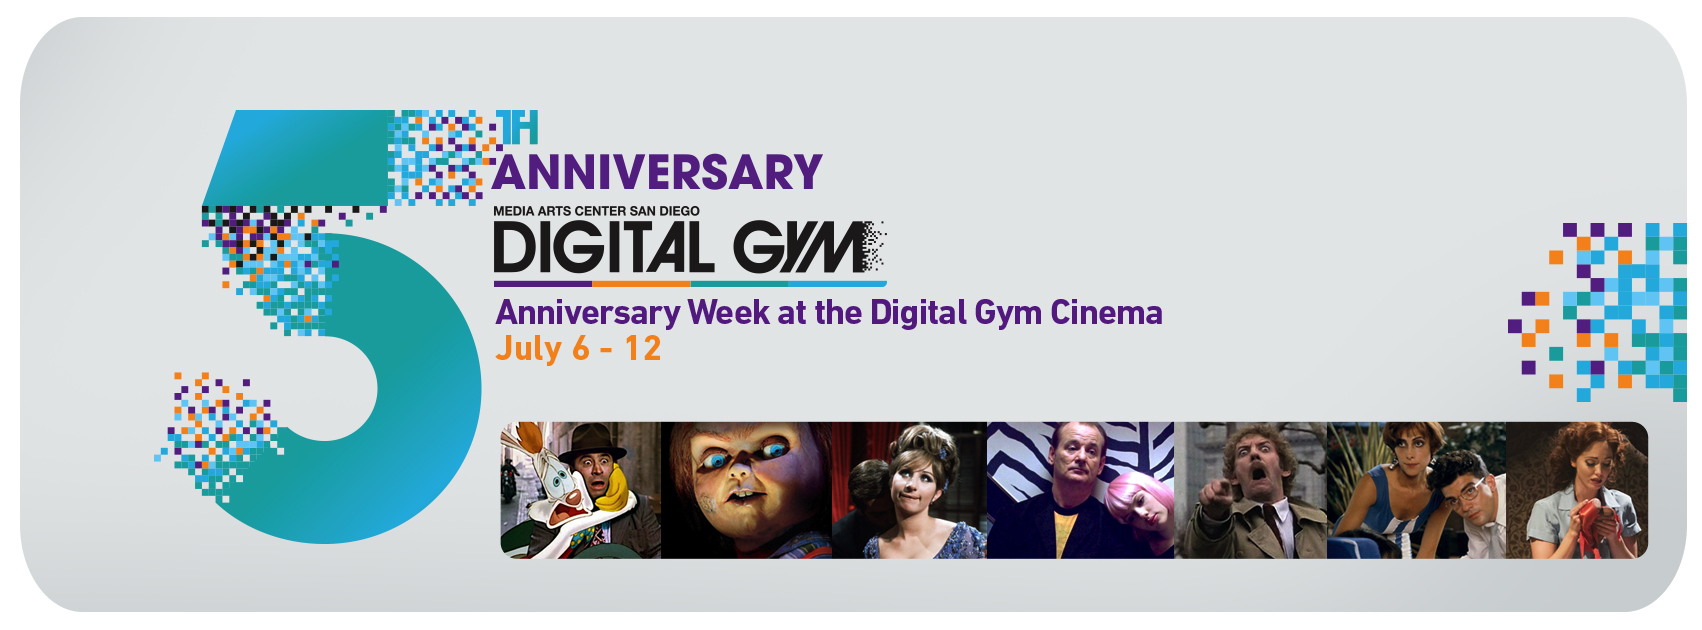 5-Year Anniversary Celebration at Digital Gym Cinema